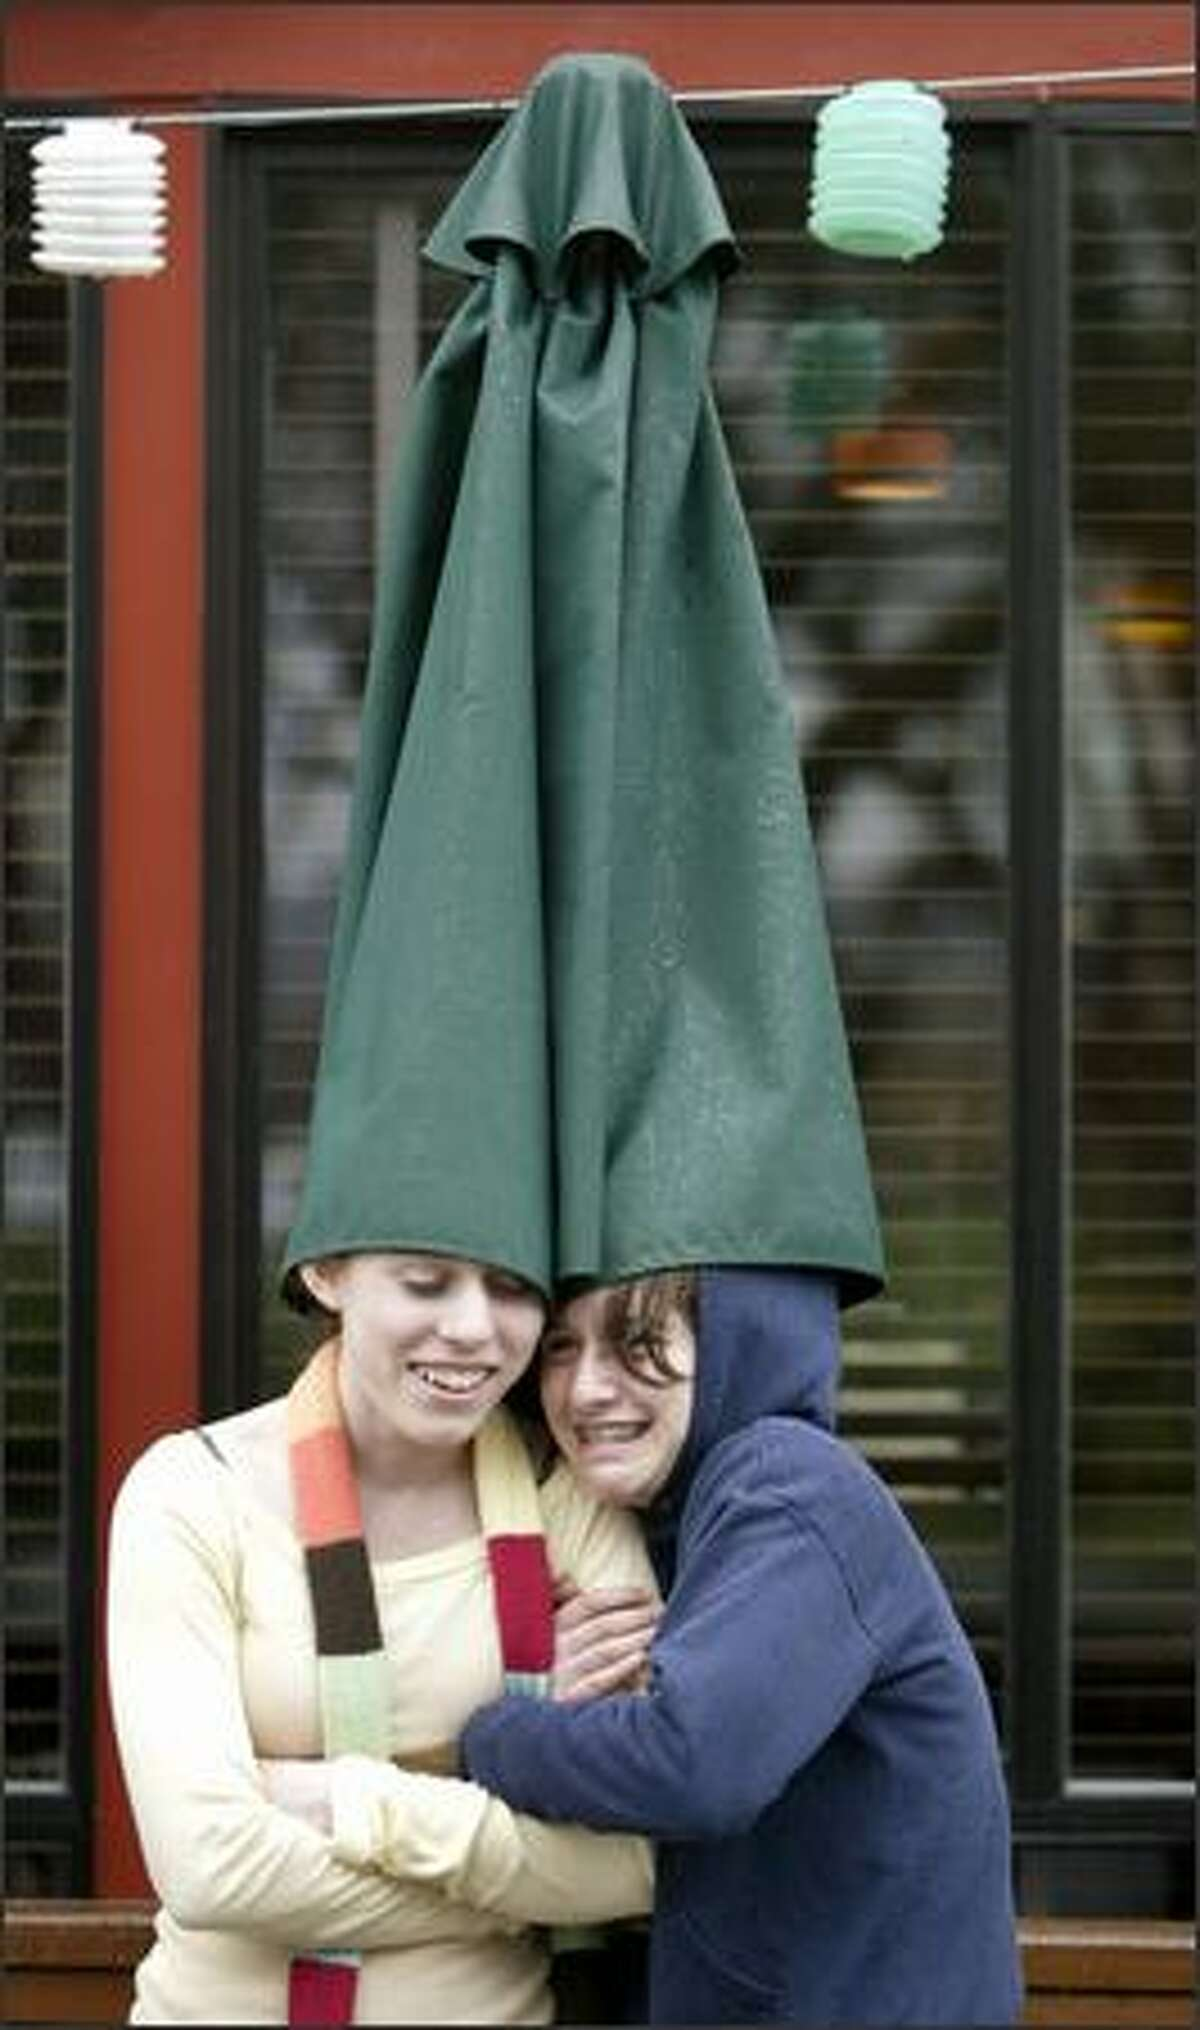 Alea Christiansen, left, and Kate Baron, both eighth-graders at Billings Middle School, get a little creative as they use a patio umbrella to try to keep dry while waiting to enter the Green Lake Bar & Grill in Seattle on Wednesday. The school, in a partnership with the restaurant, exchanges weekly hot meals for students for parking space for the restaurant's patrons. Today, that rain will be back.